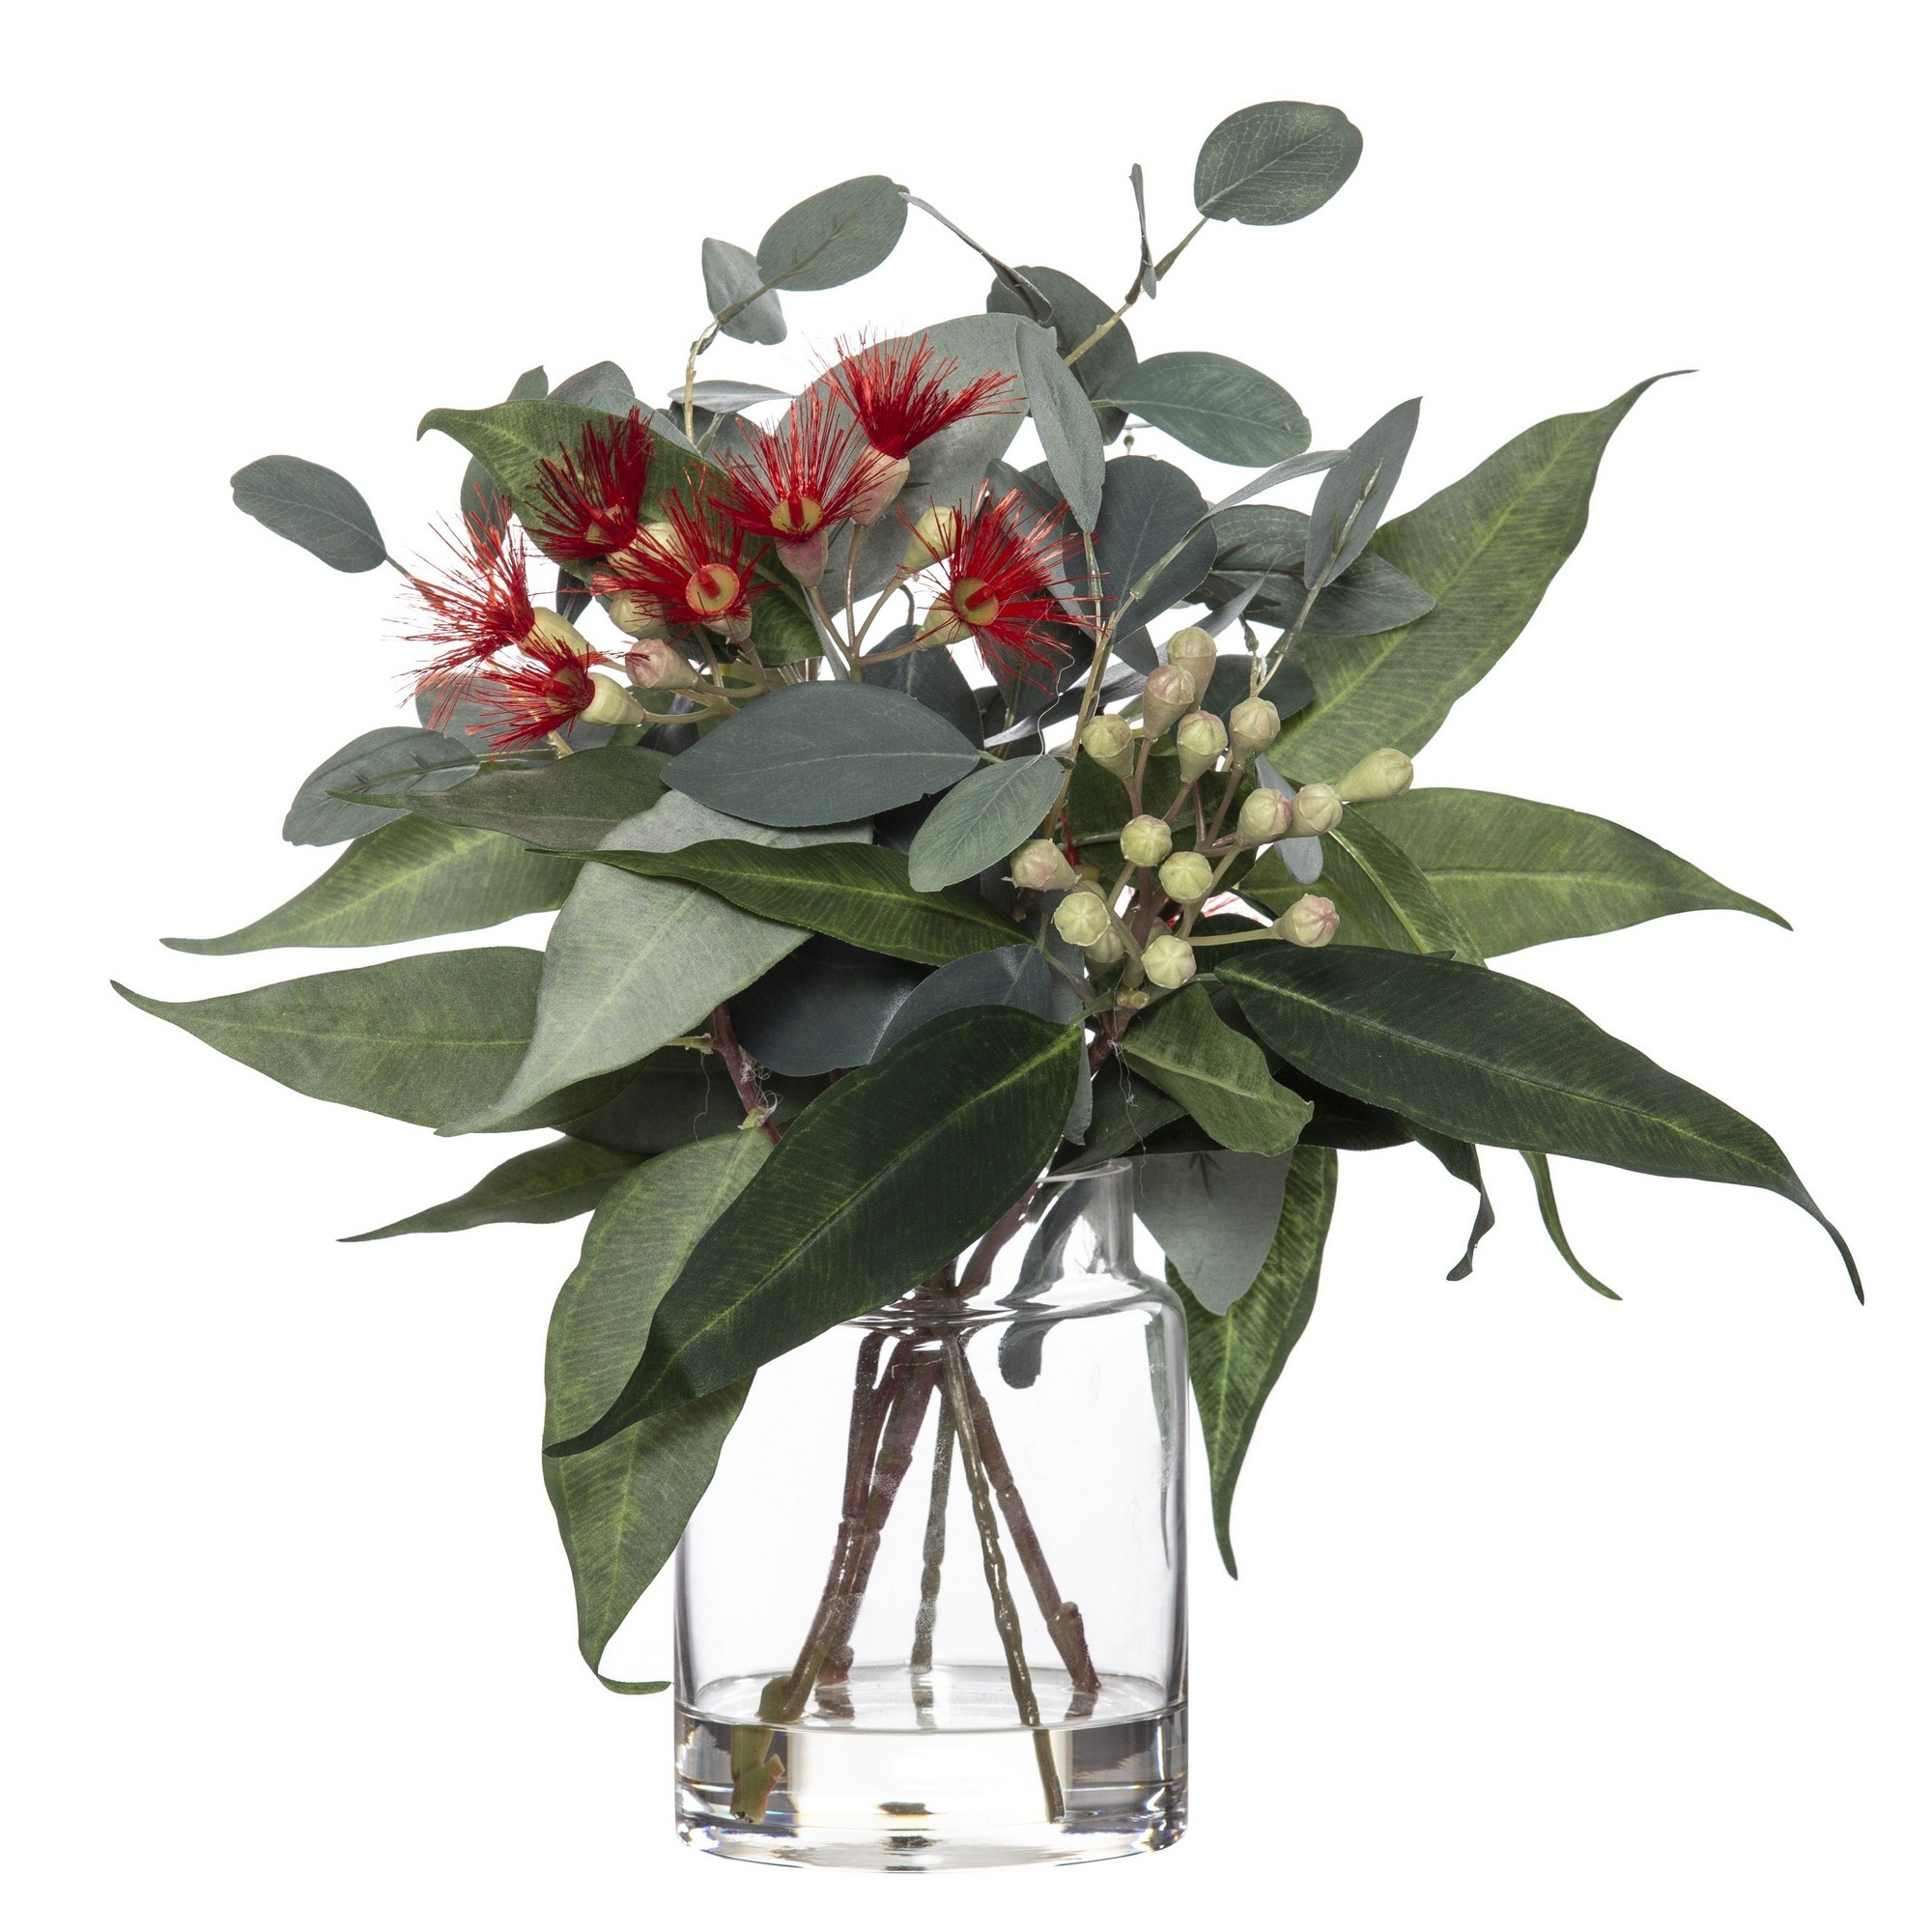 Artificial Flowering Eucalyptus Mix in Pail Vase, Red Flower